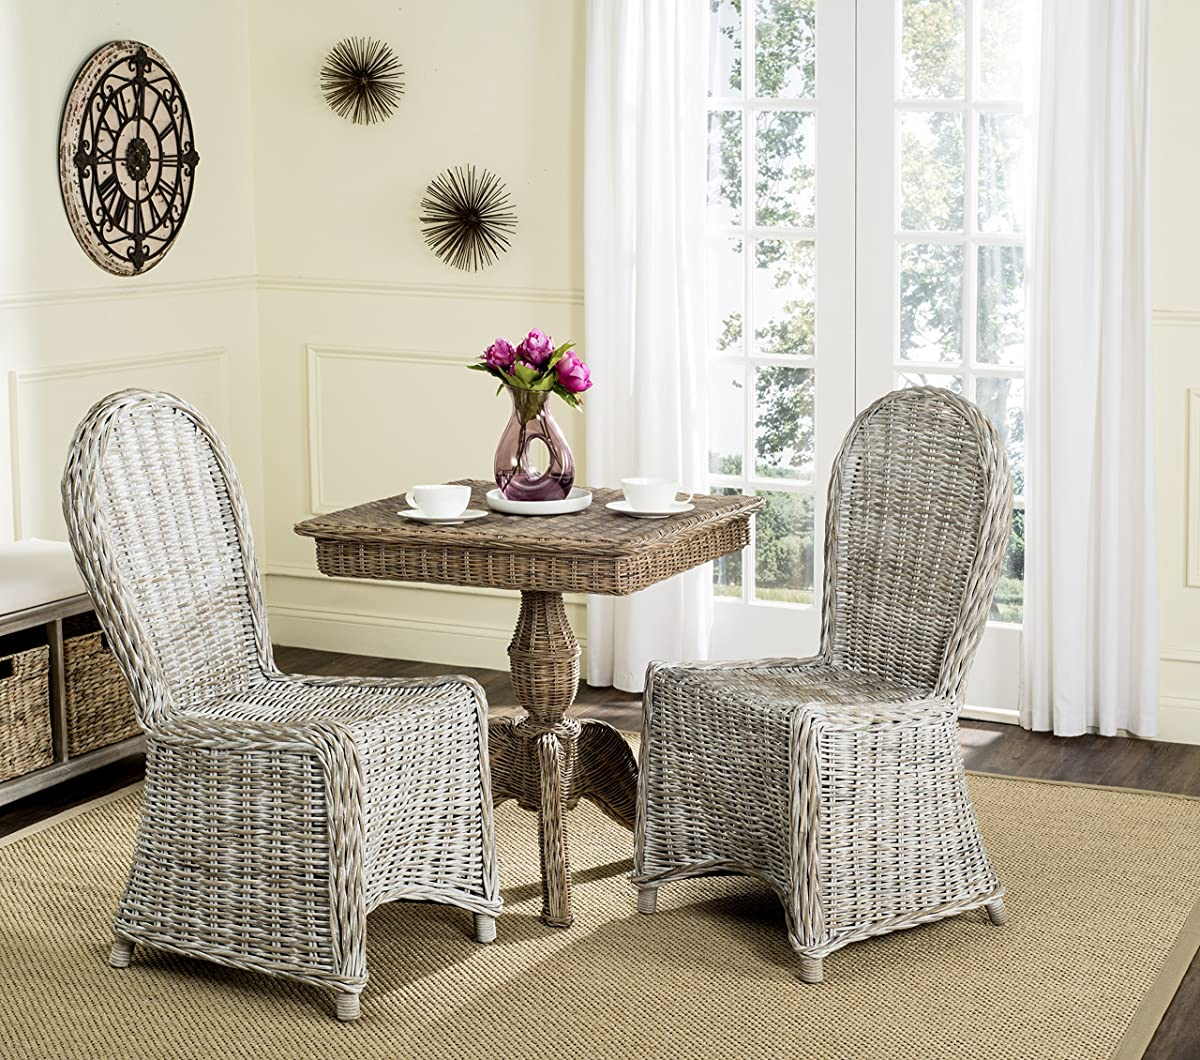 Safavieh Home Collection Idola White Wash Wicker Dining Chair (Set of 2), 19""